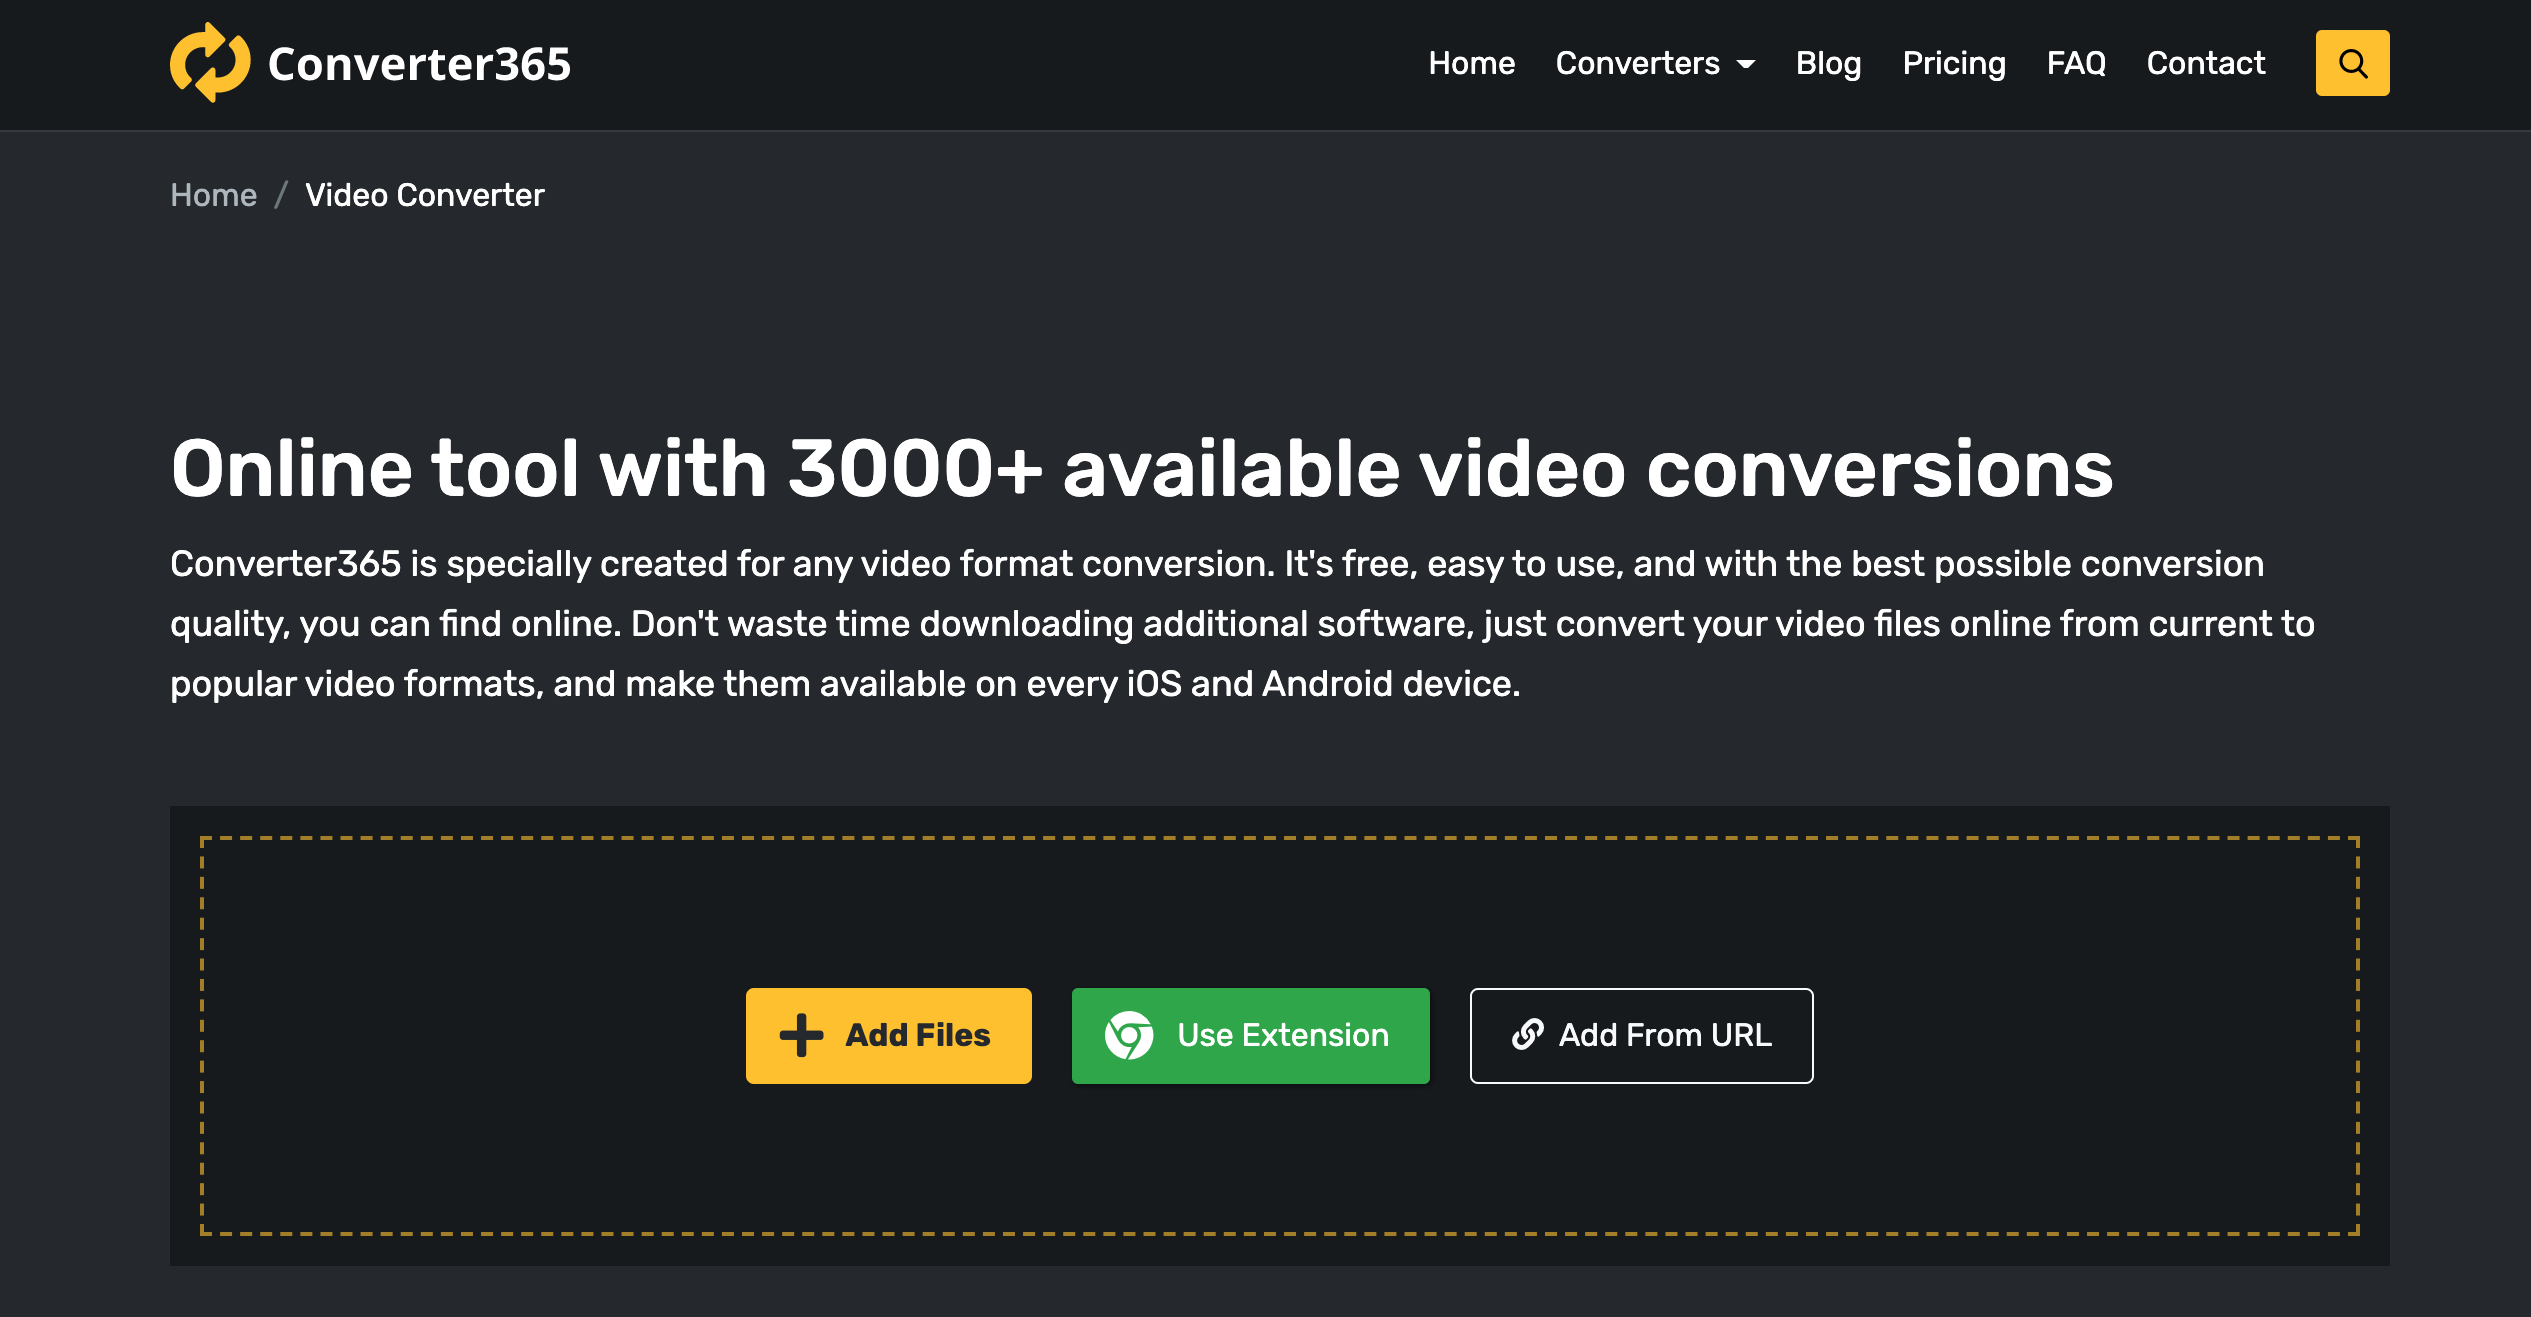 Converter365 free online video tool for the conversion